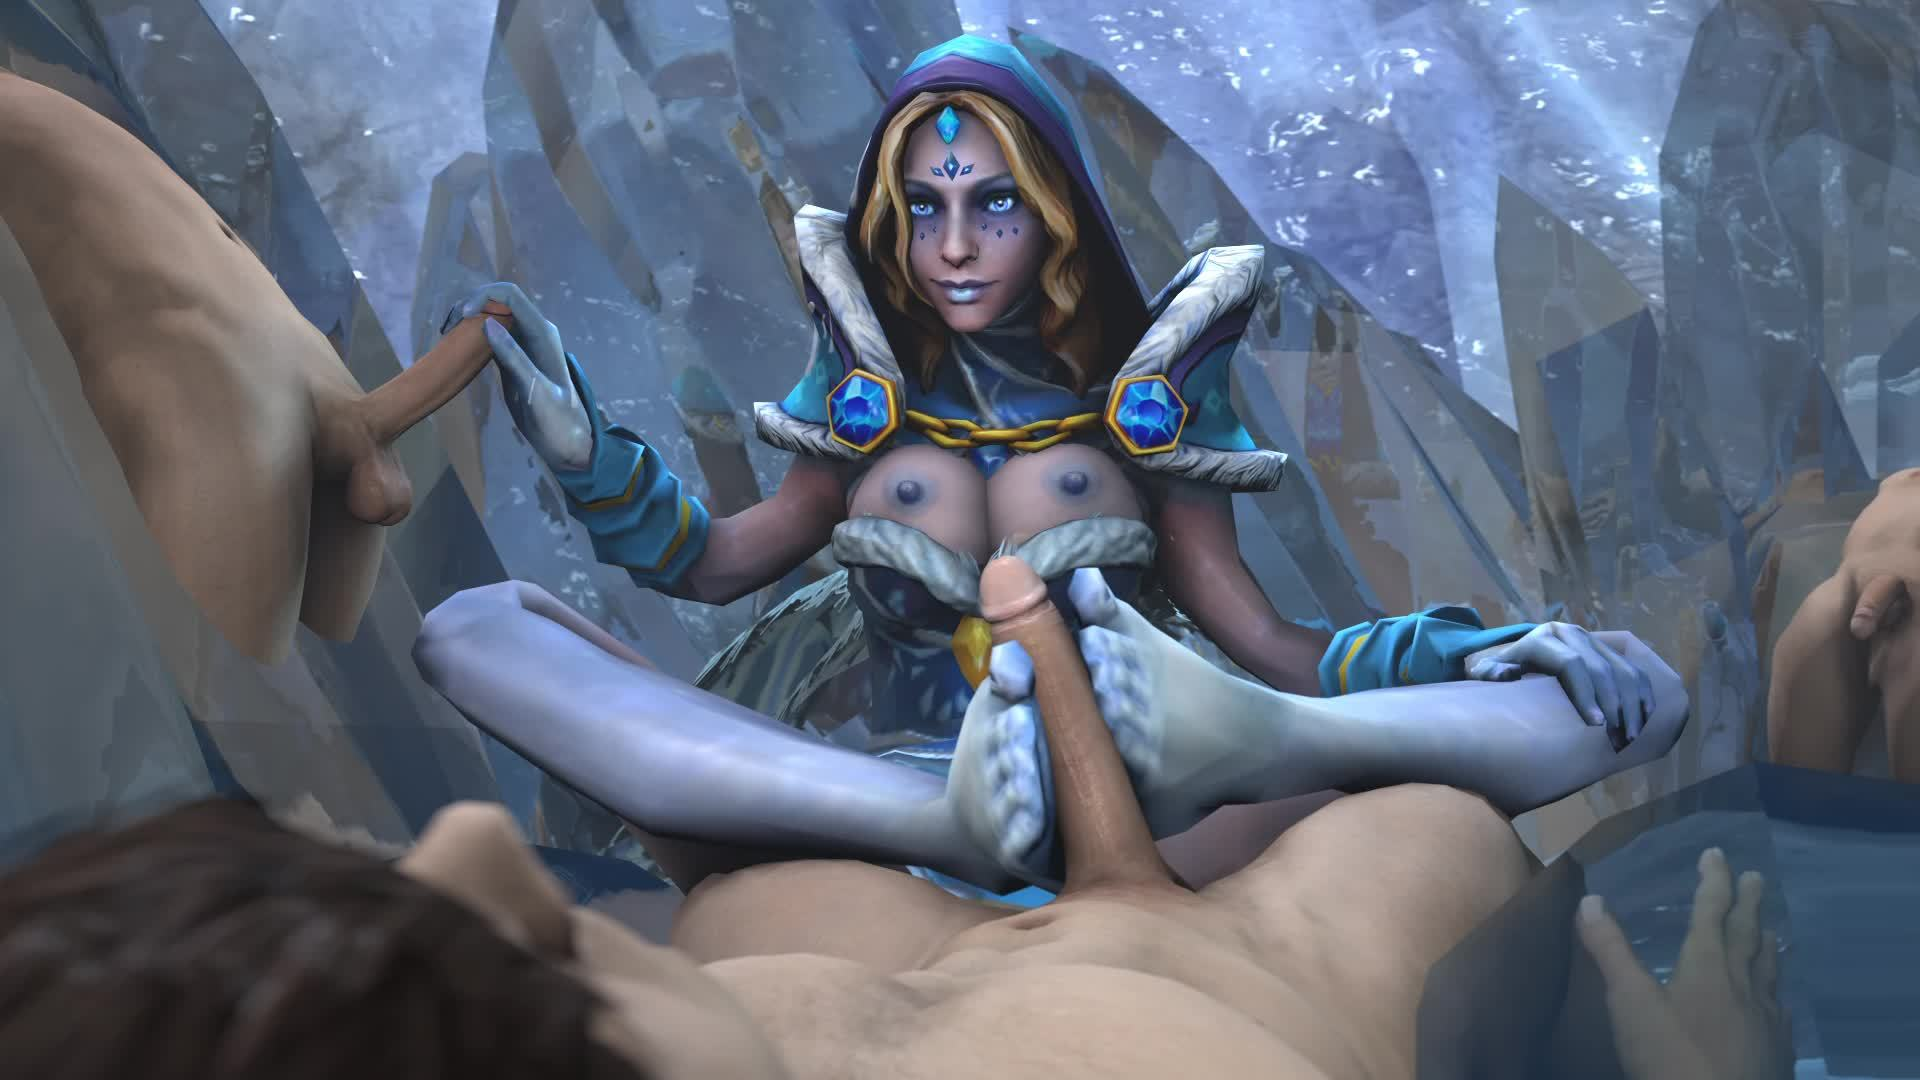 Dota game nude photo sexy tight females